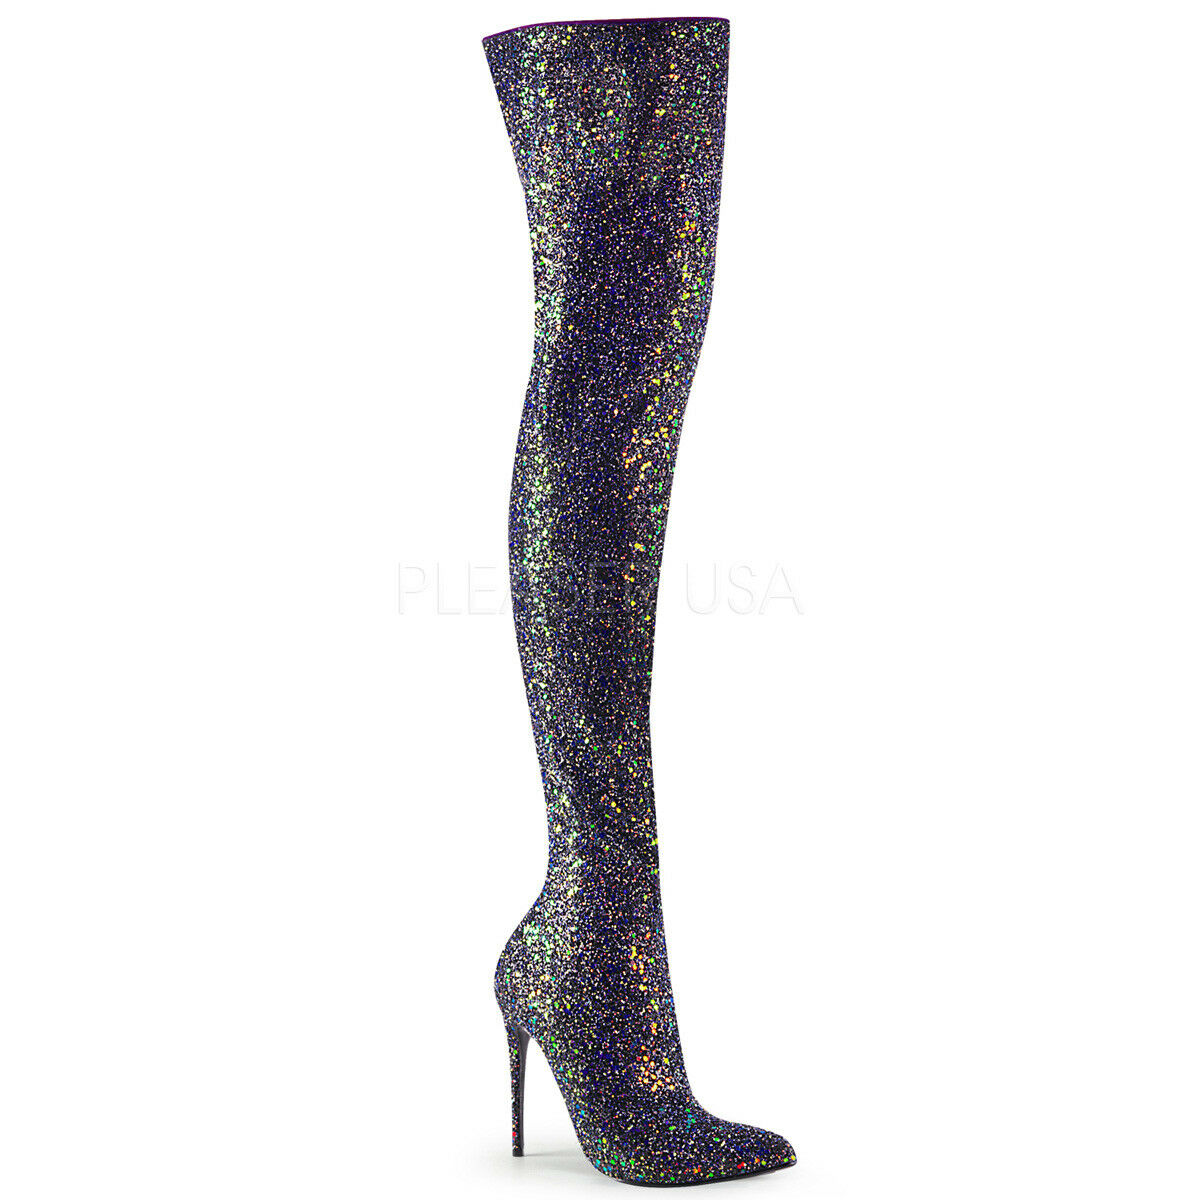 PLEASER COURTLY-3015 Women's Sexy 5  Heel Black Glitter Shimmer Thigh High Boots